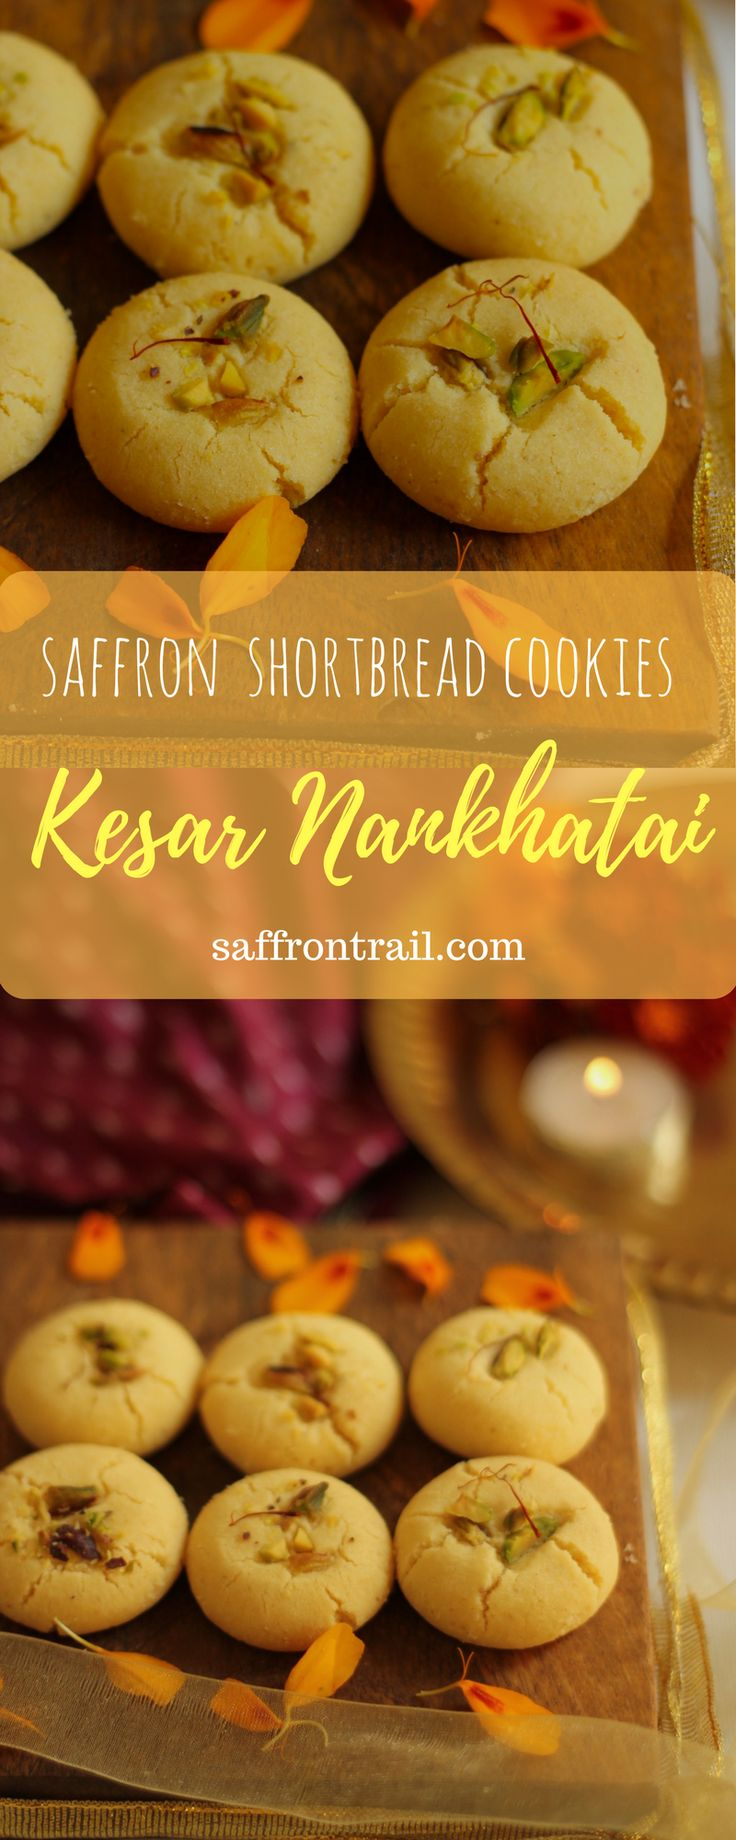 Kesar Nankhatai - Indian Shortbread Cookies With Saffron Recipe for Diwali special Kesari Nankhatai - Indian shortbread cookie with saffron and pistachios - Diwali special recipes - Eggless Indian cookies